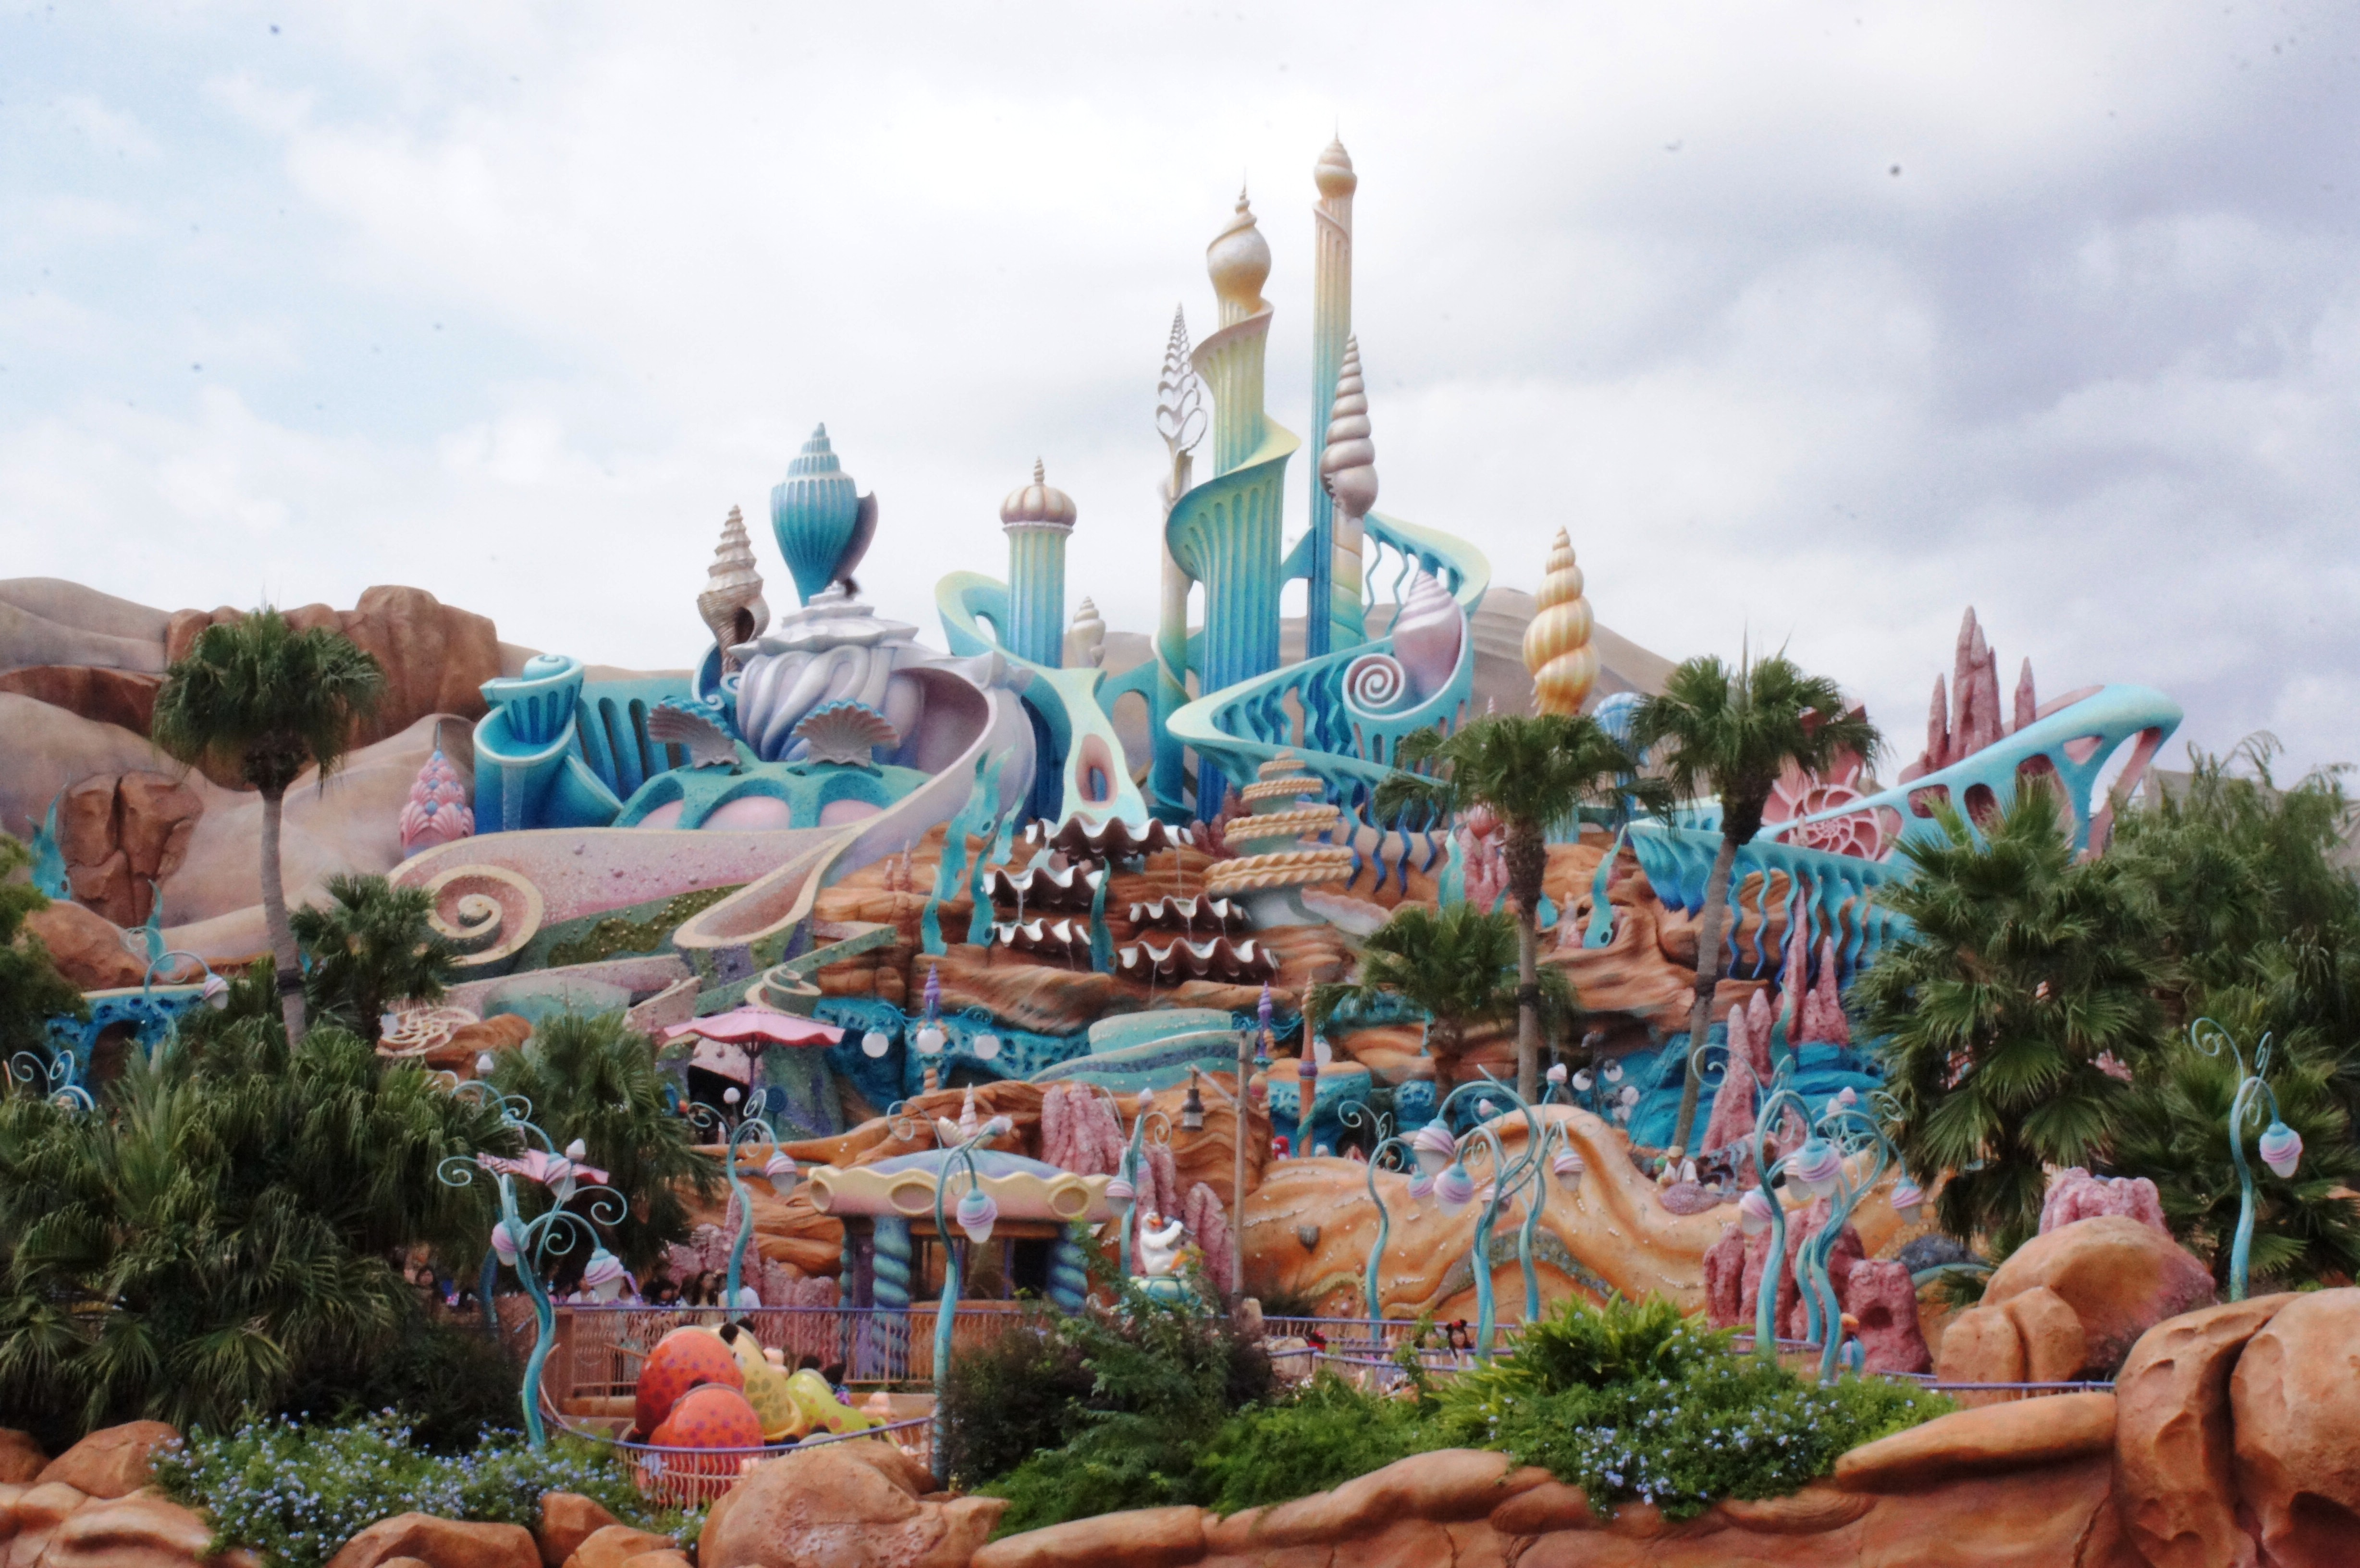 Create A Mermaid World My Mermaid Lagoon Pearl/'s Lagoon Kid/'s Fantasy Playset